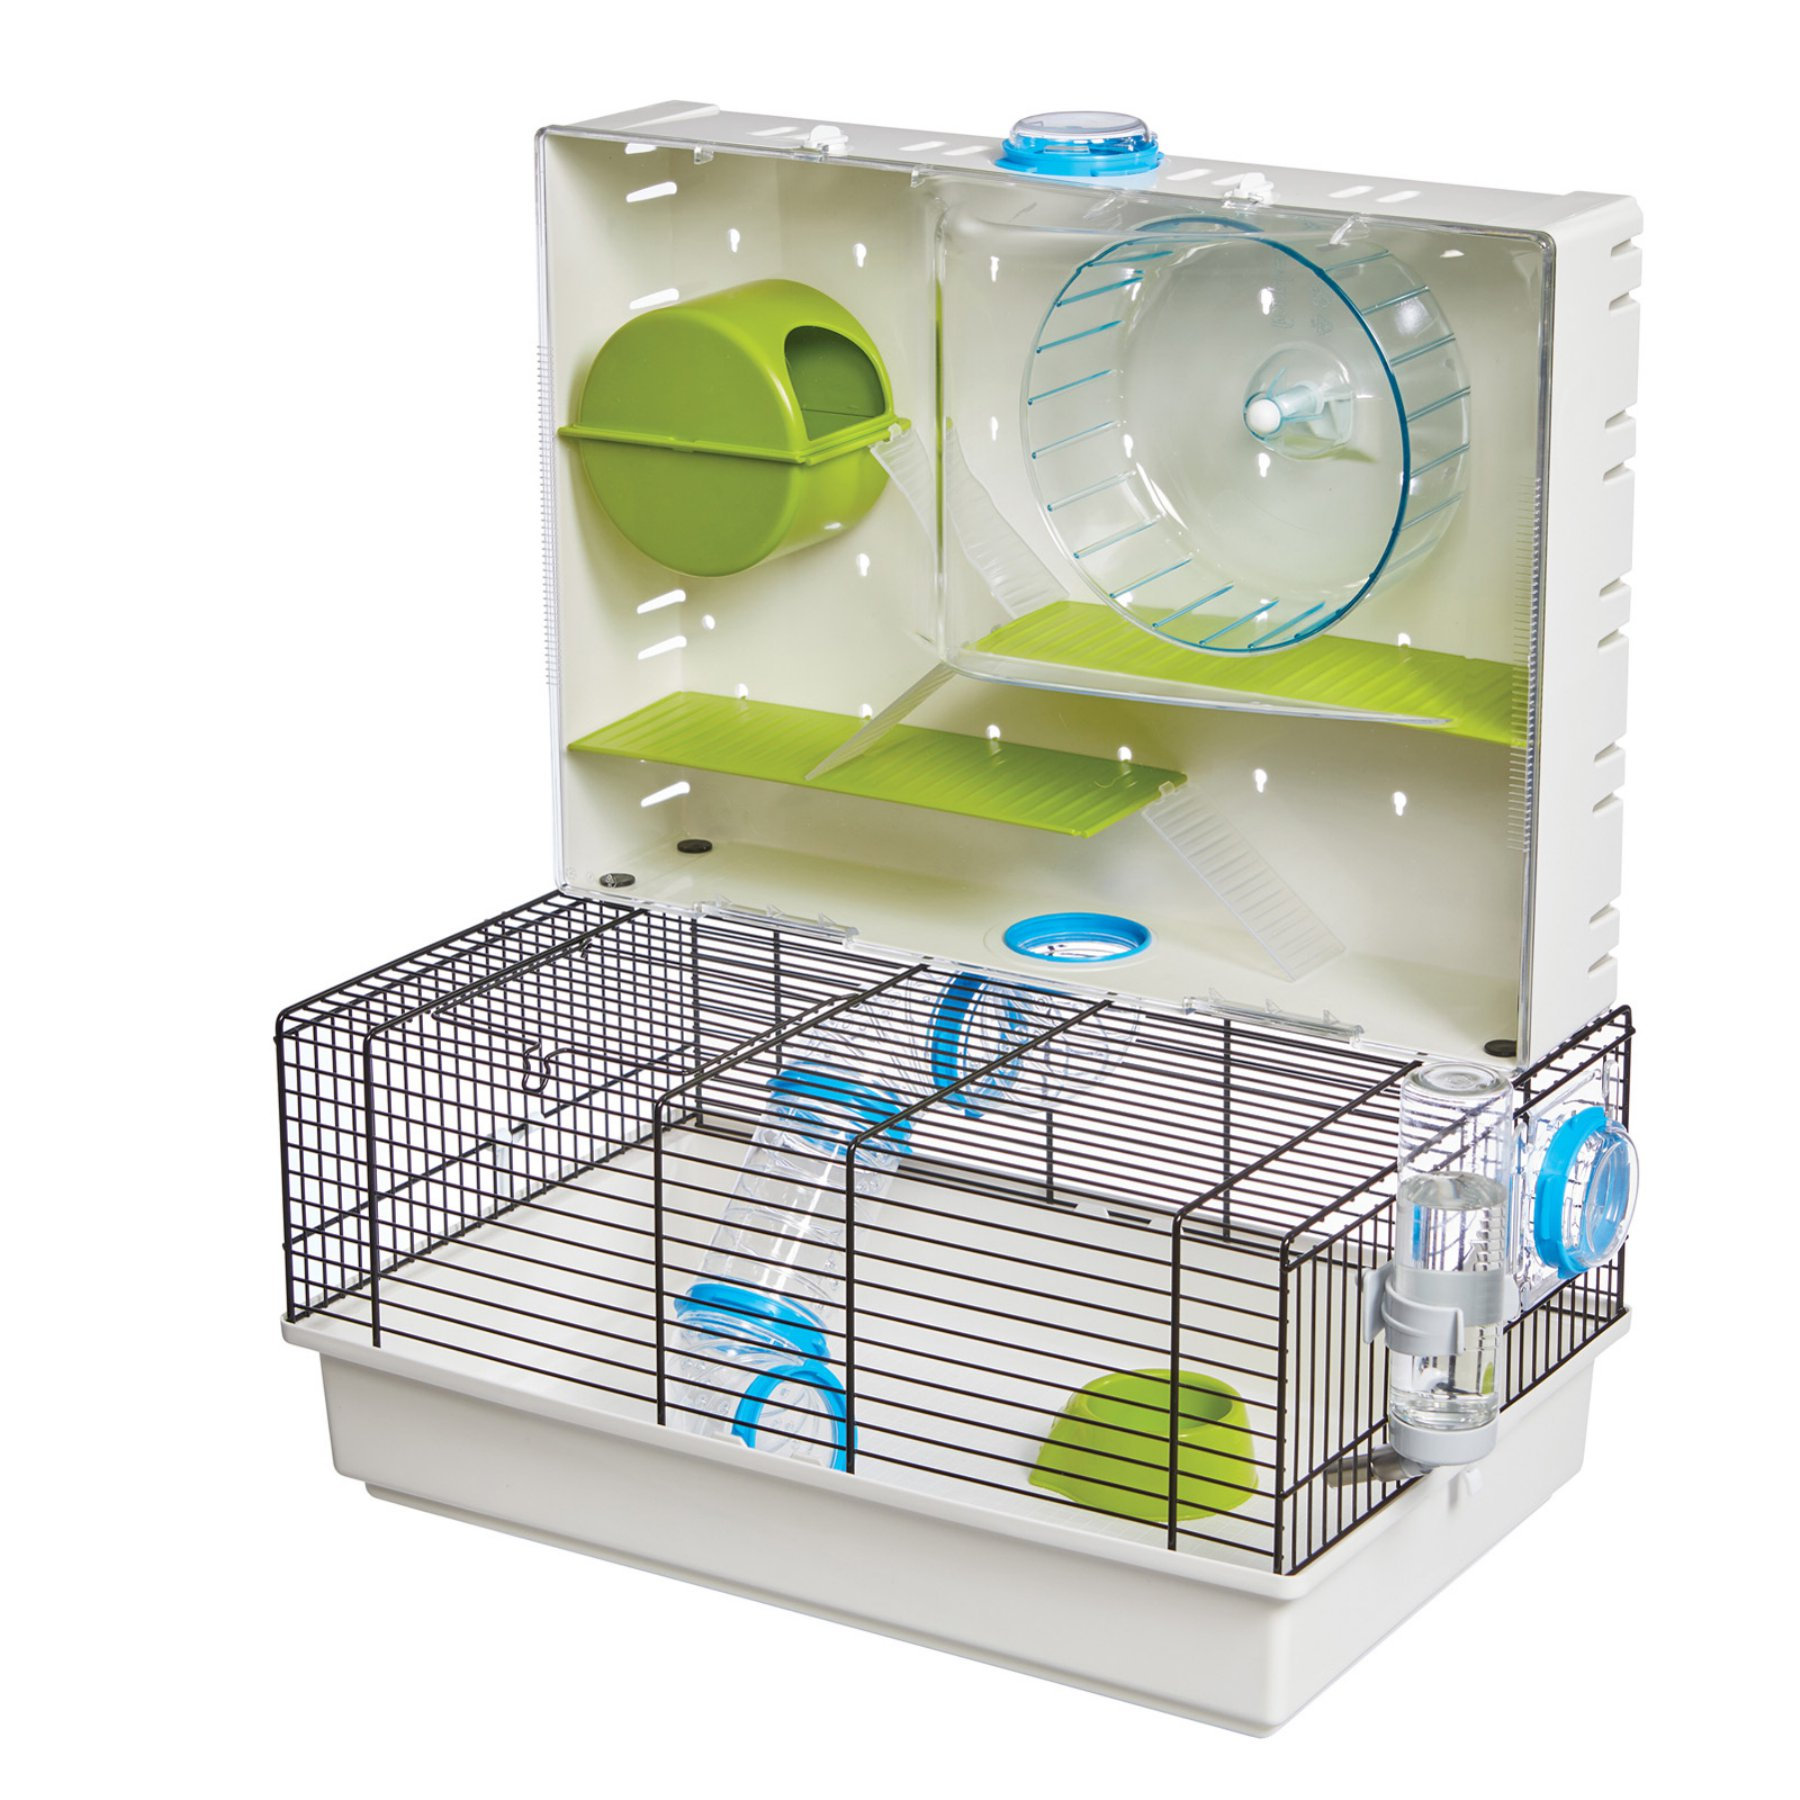 Midwest Homes For Pets Critterville Arcade Hamster Home Cool